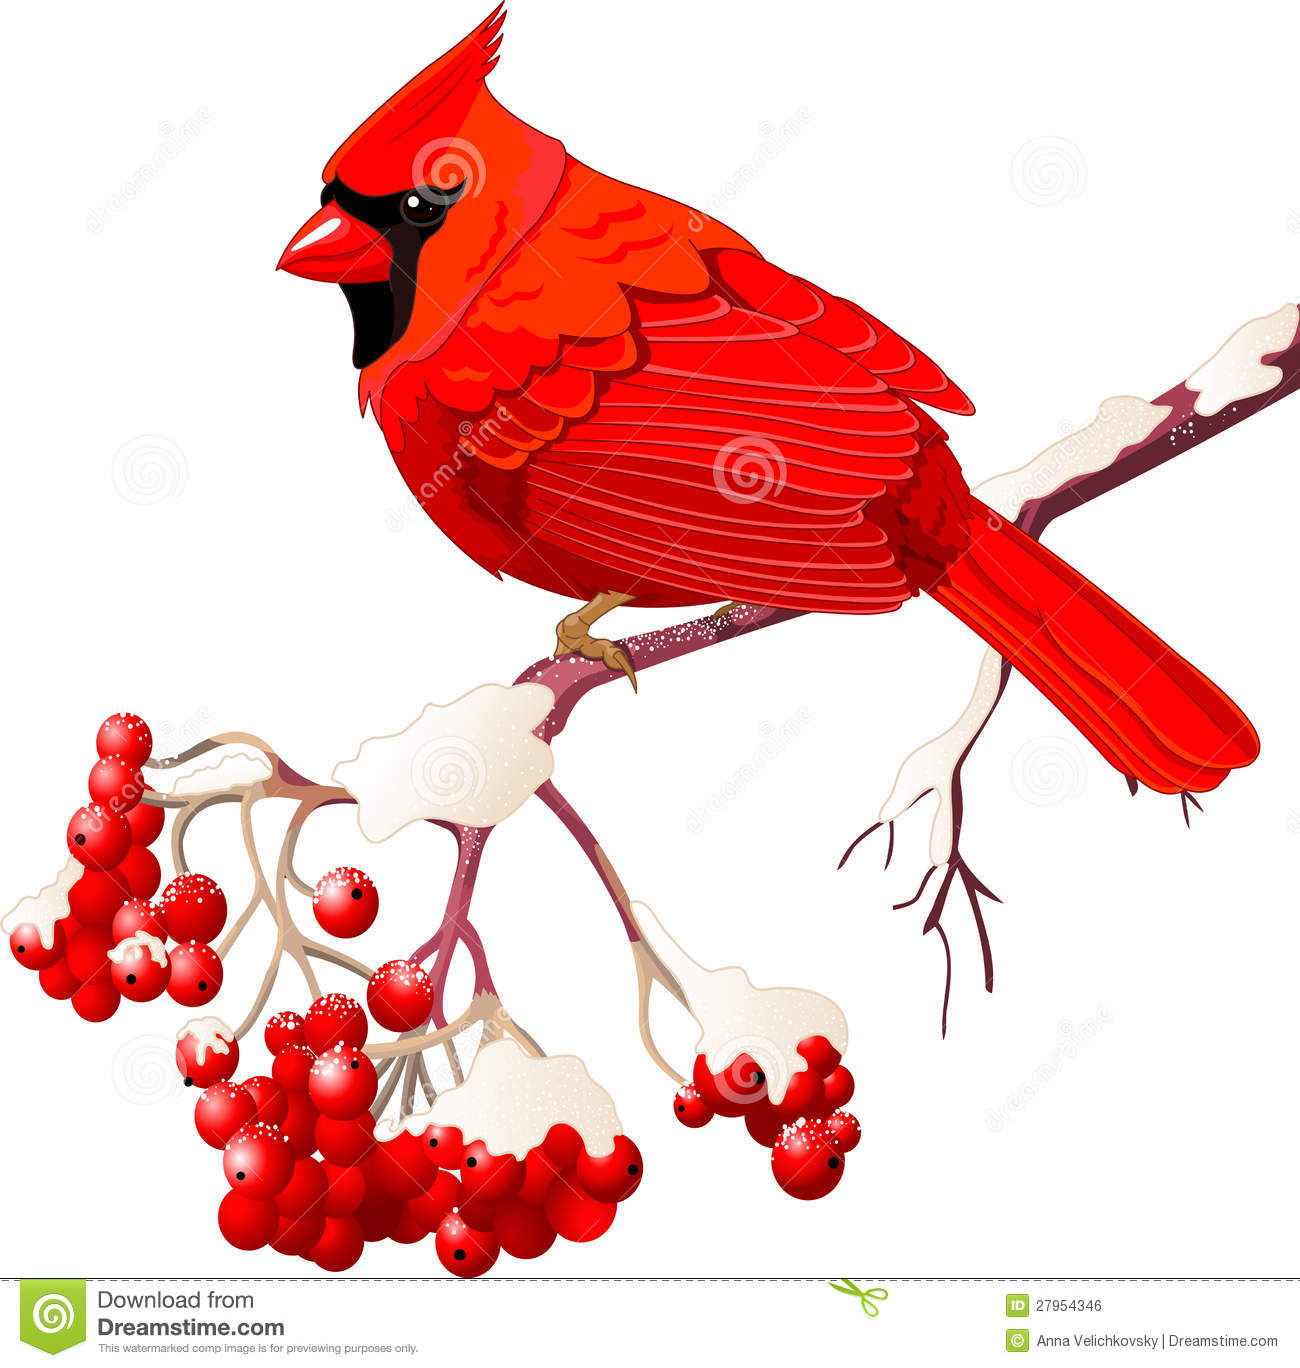 Northern Cardinal clipart #17, Download drawings